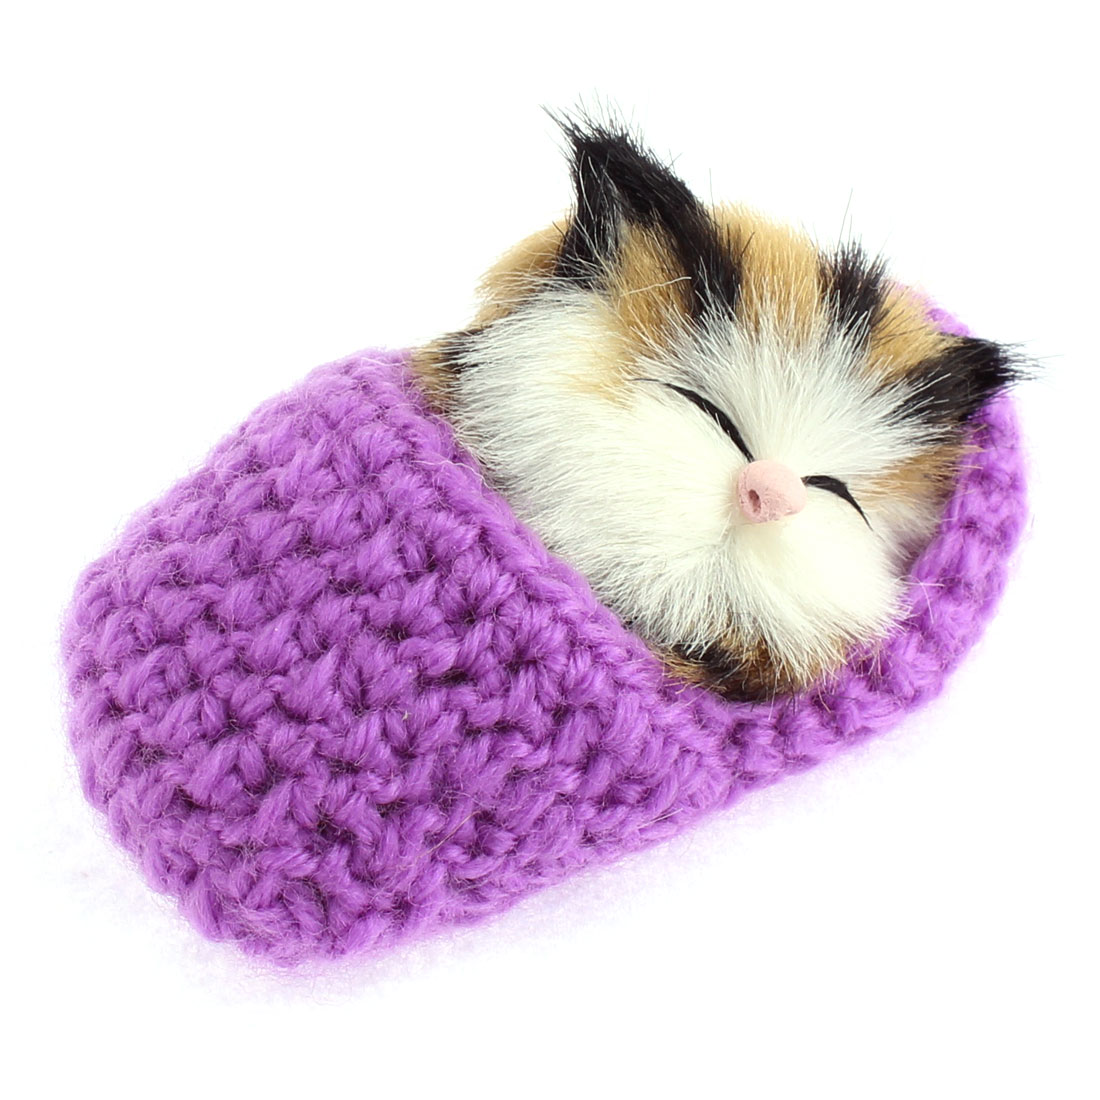 Home Decor Simulation Animal Sound Napping Sleeping Cat in Sock Purple